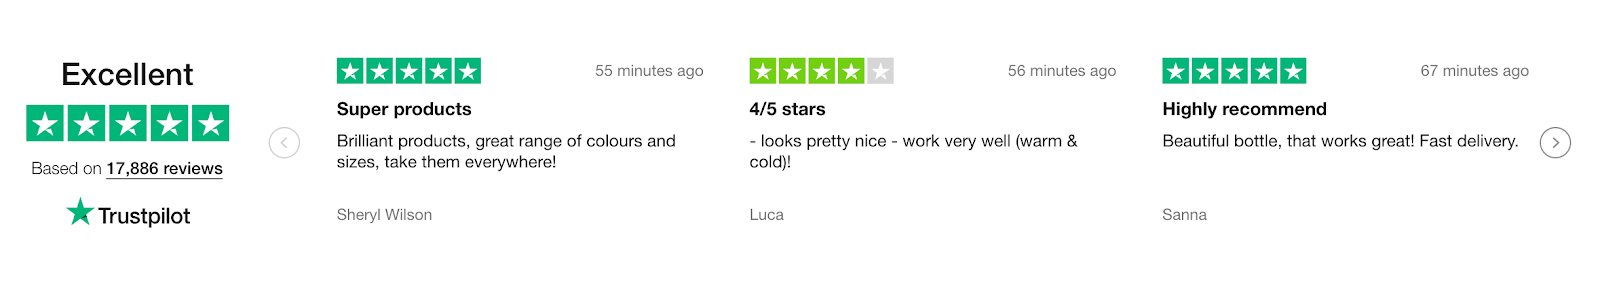 Screenshot showing Trustpilot ratings